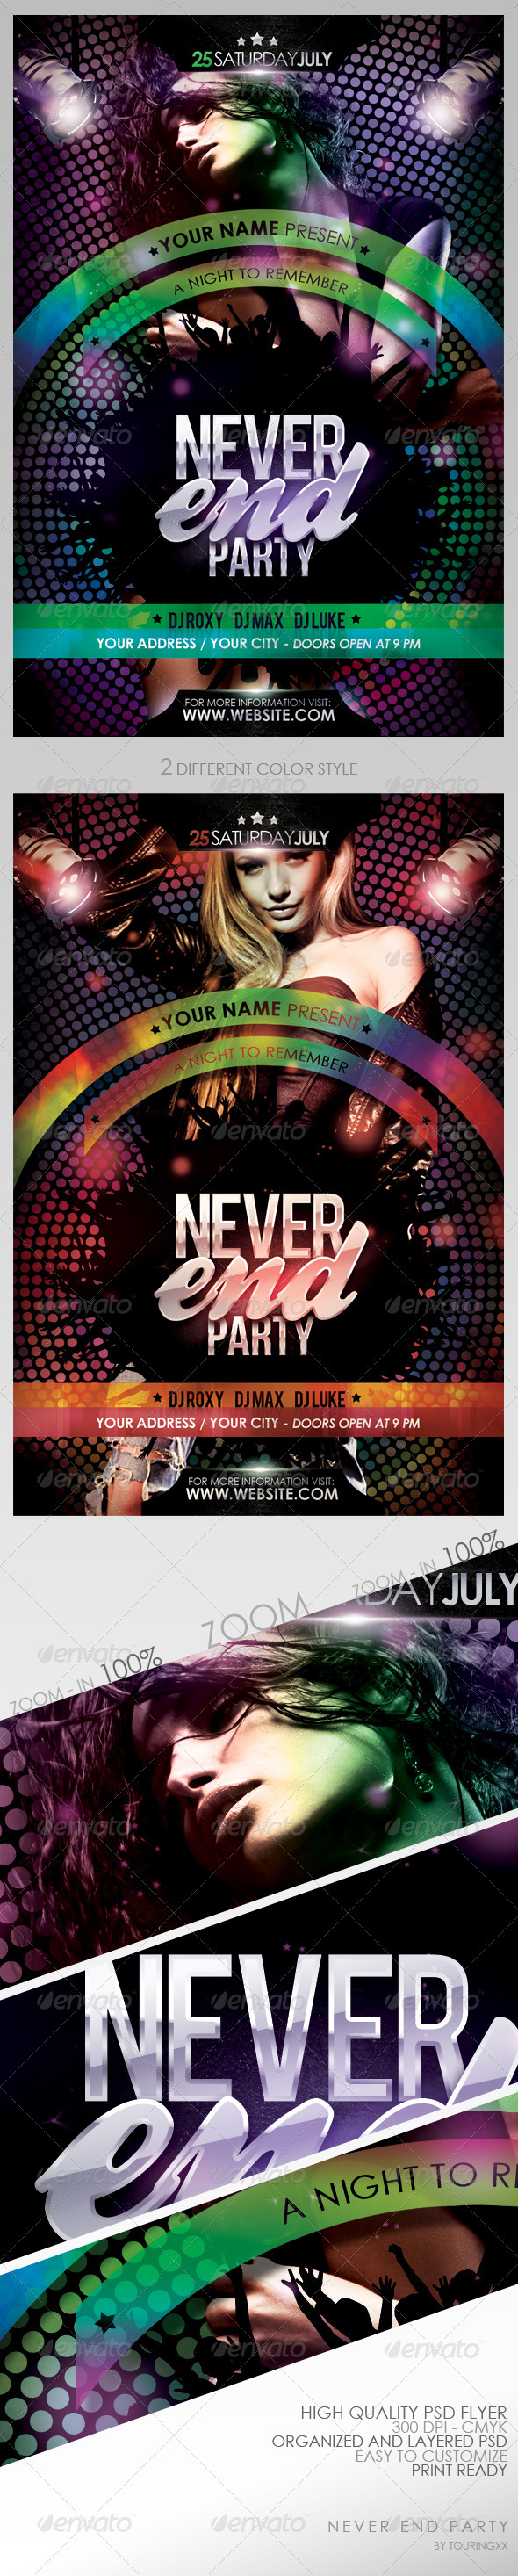 Never End Party Flyer Template - Clubs & Parties Events